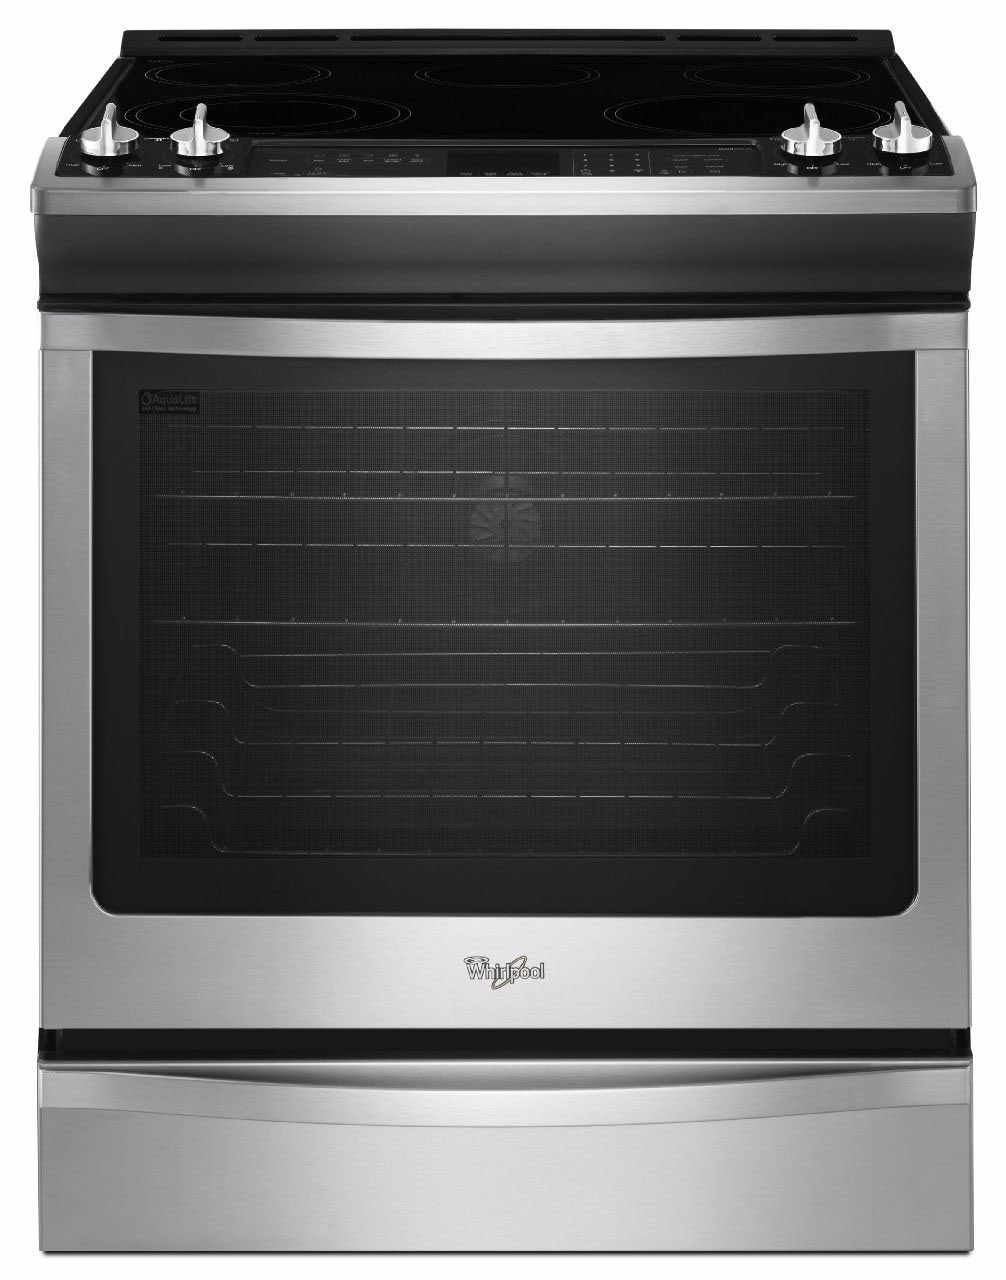 Whirlpool Stainless Steel Slide-In Electric Convection Range (6.2 Cu. Ft.) - YWEE730H0DS